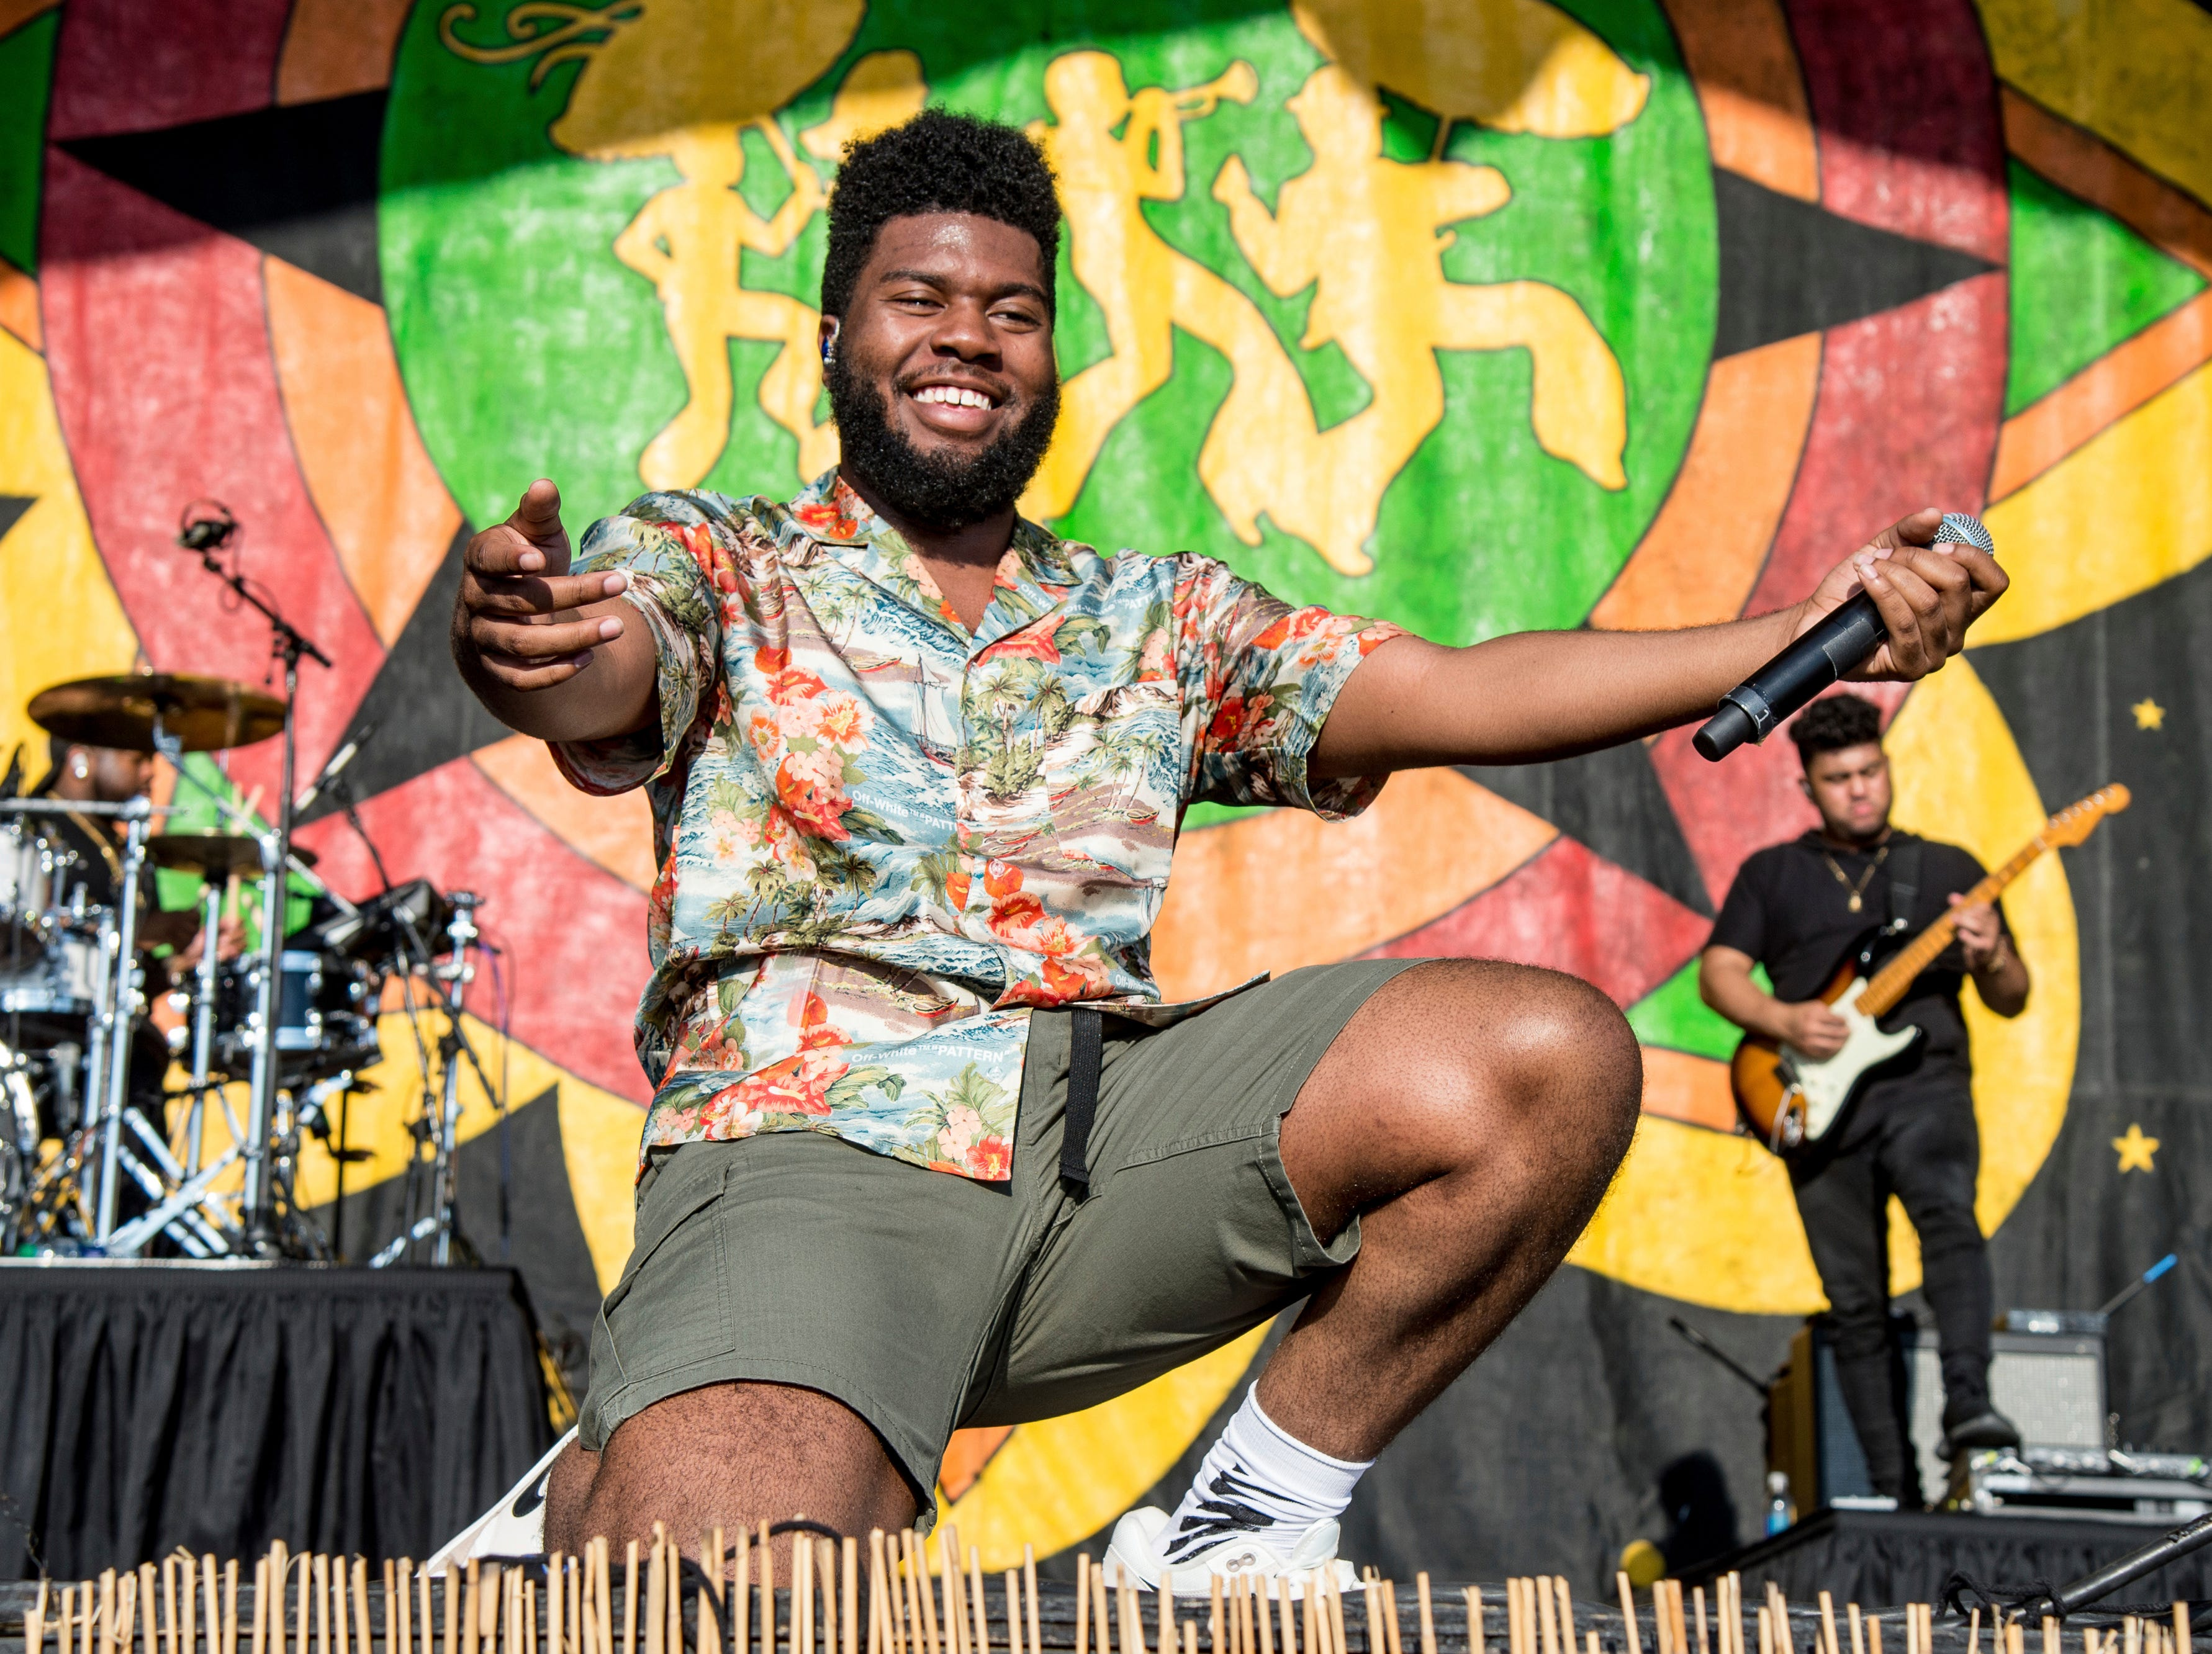 April 28: Khalid performs at the New Orleans Jazz and Heritage Festival.